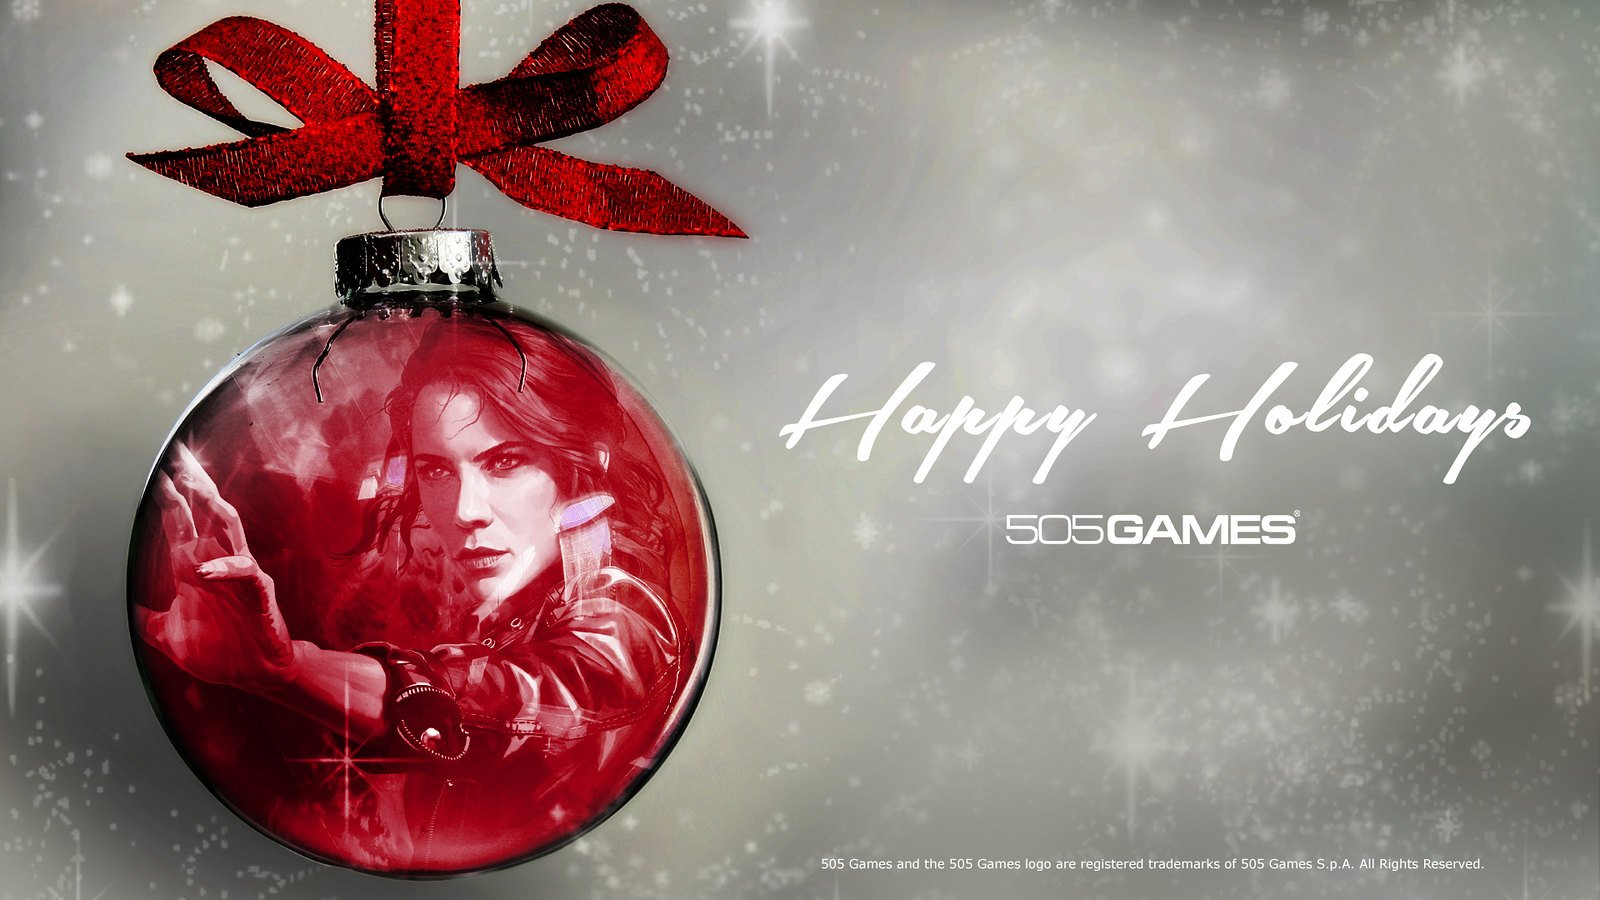 505 Games Happy Holidays PC Wallpaper